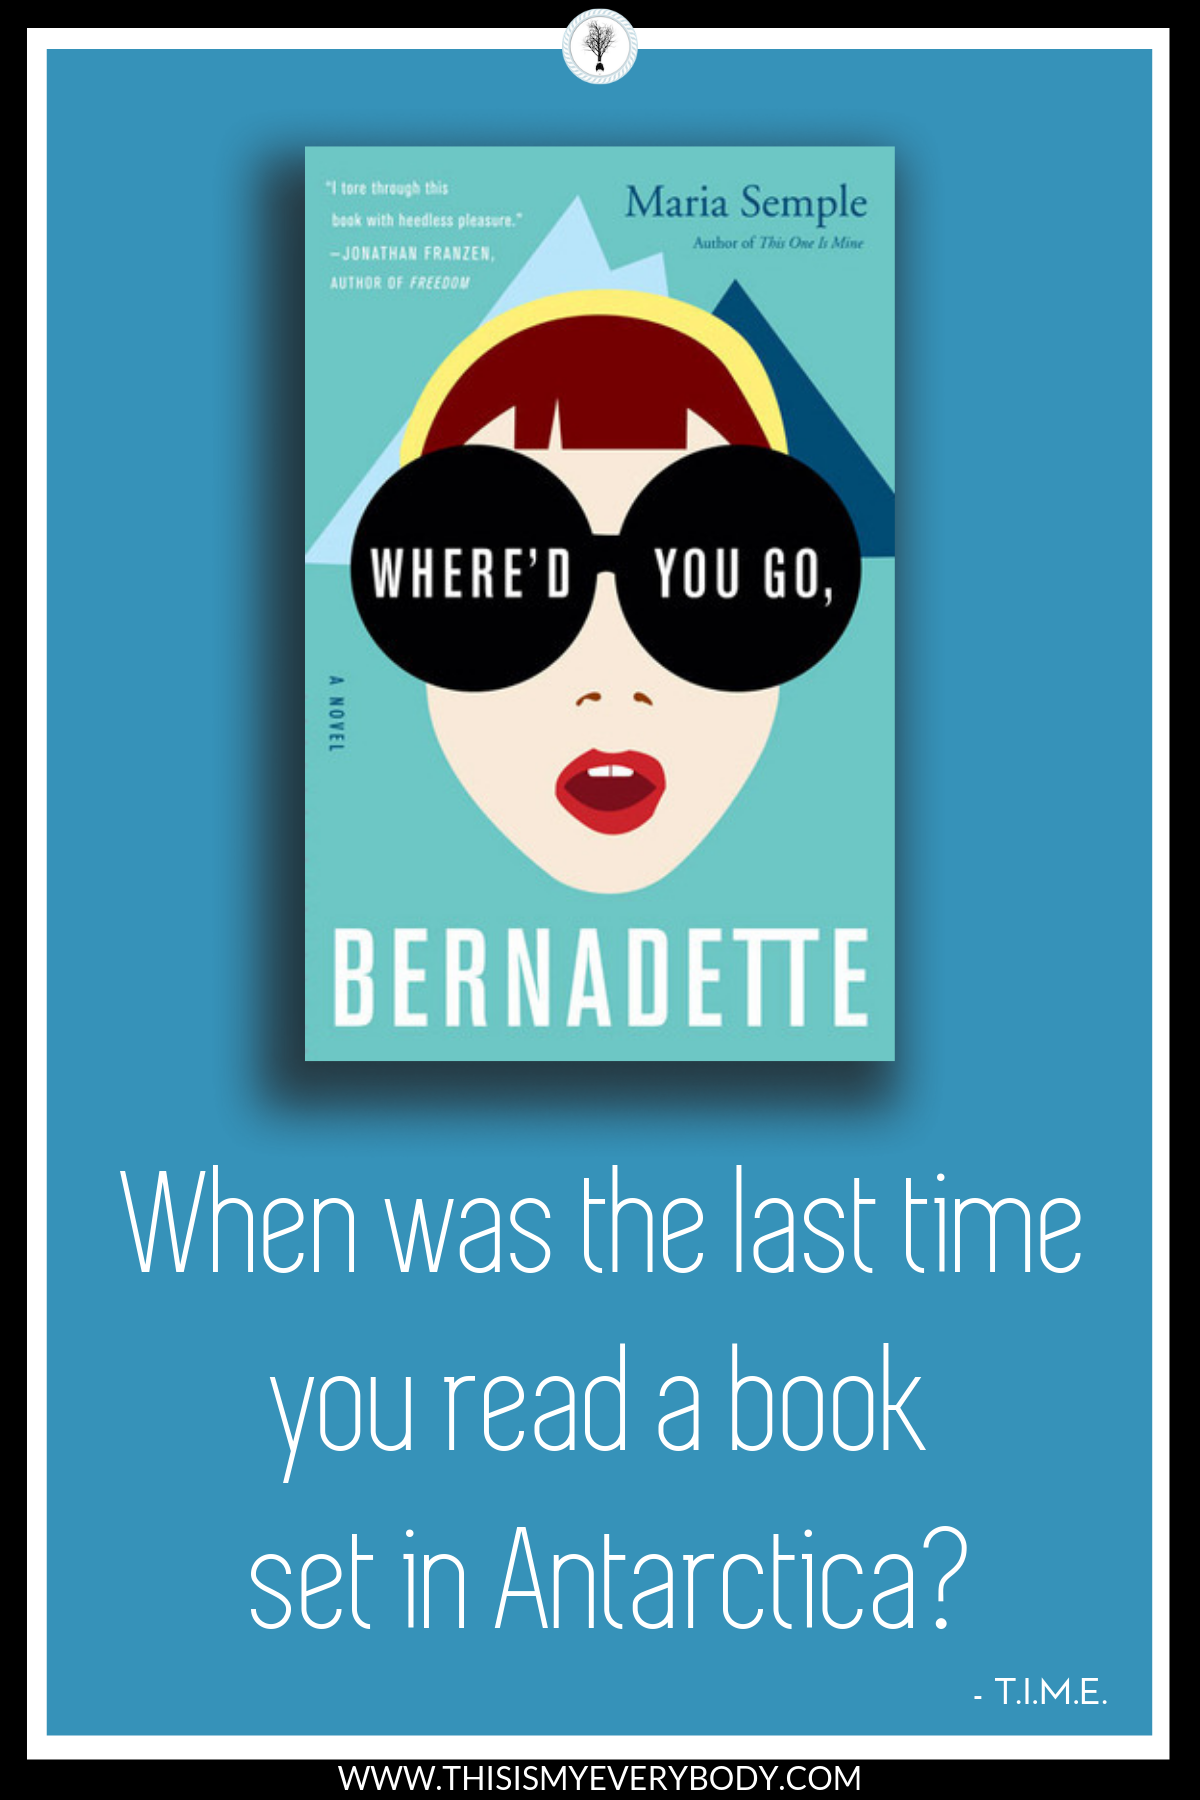 The mother-daughter relationship in this book stretches to the end of the earth… And I'm not kidding. I was laughing out loud in restaurants all over NYC reading this book… When was the last time you read a book set in Antarctica?… Where'd You Go, Bernadette by Maria Semple